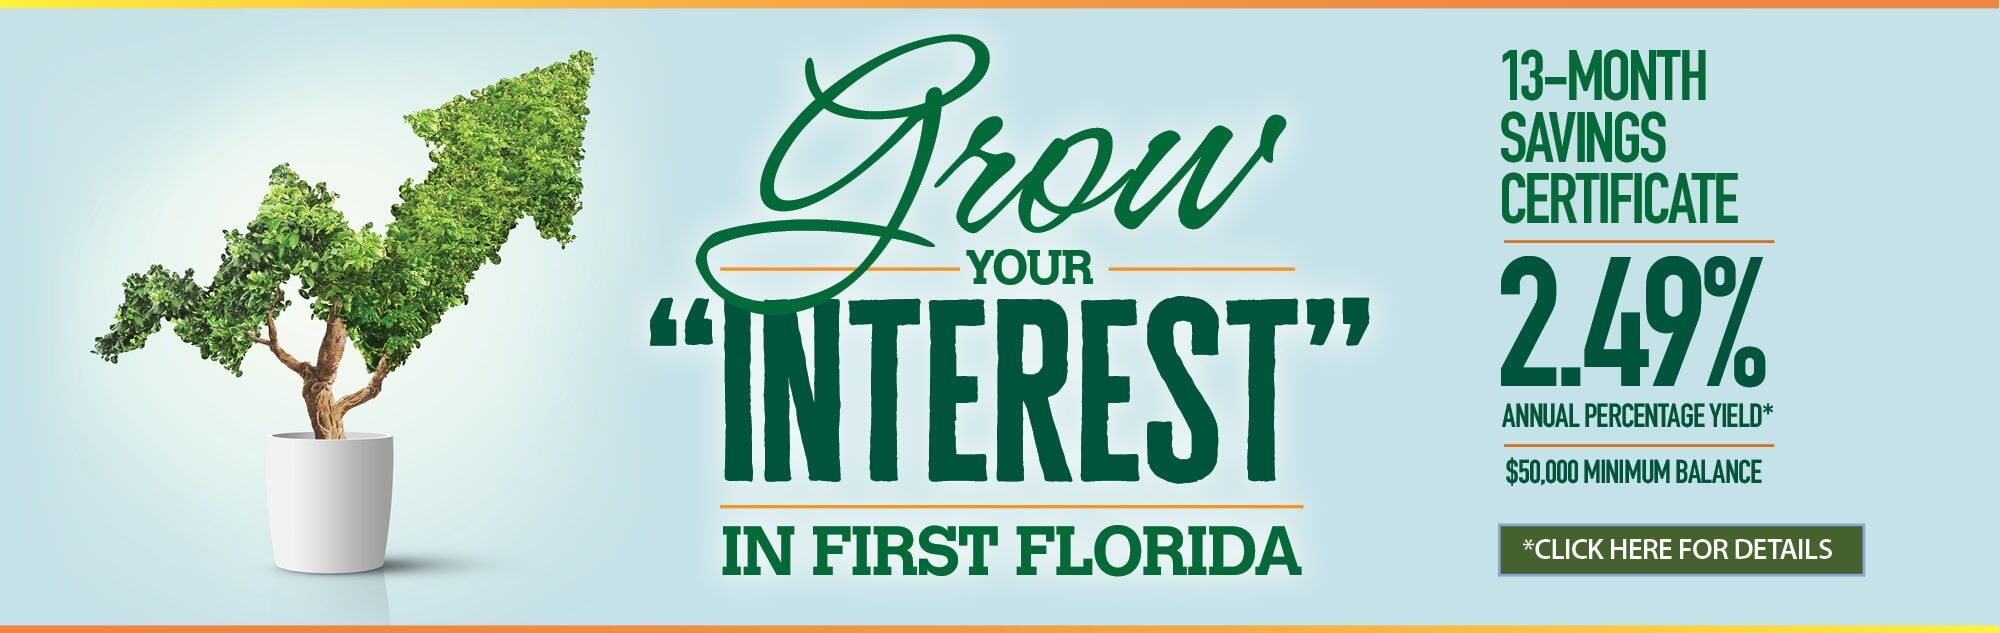 Grow your interest in First Florida 13-Month Savings Certificate. 2.49% annual percentage yield. click for details